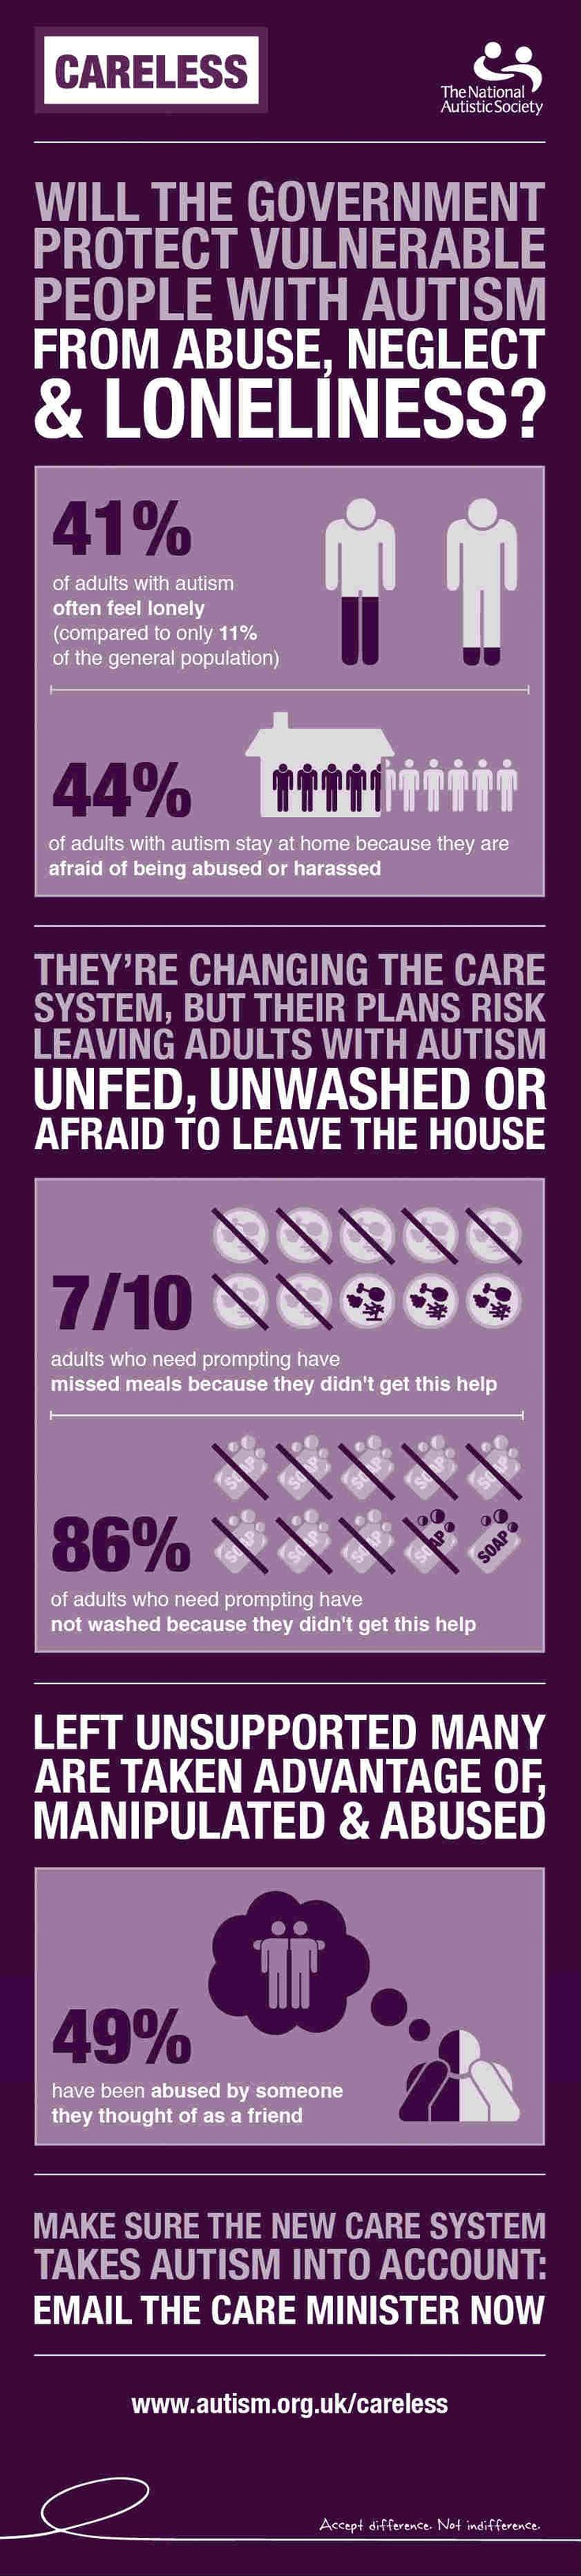 Best 25 National autistic society ideas on Pinterest